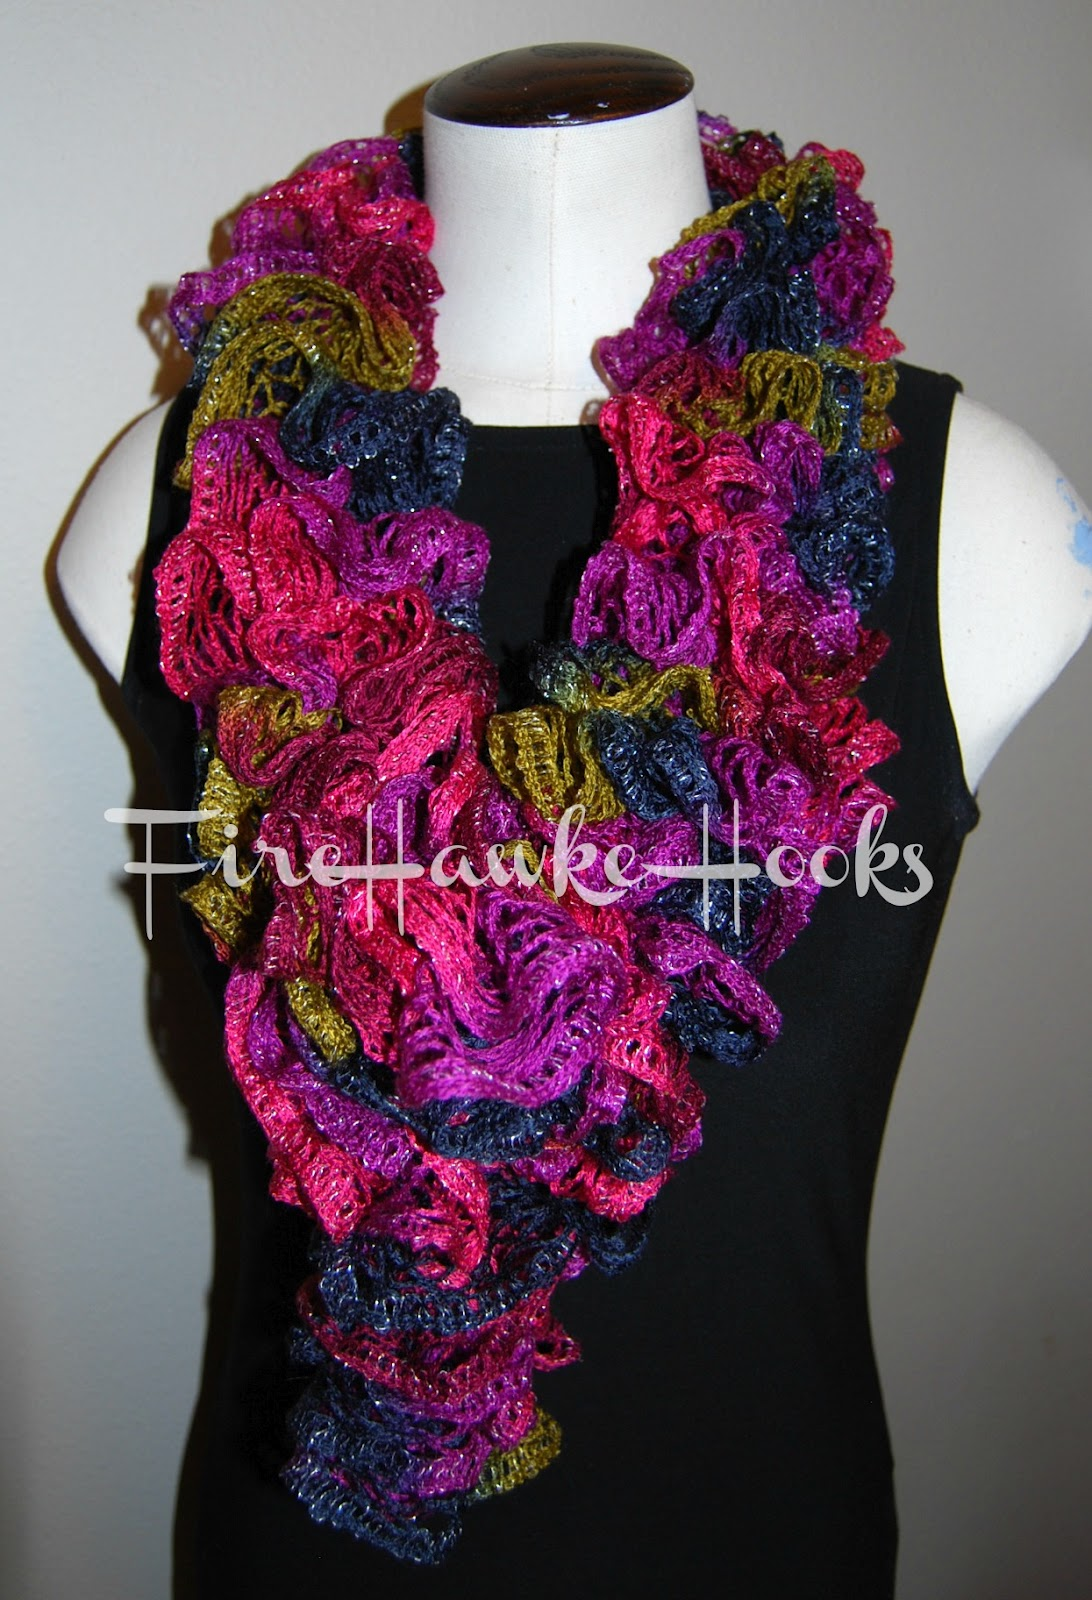 Crochet Patterns Ruffle Scarf : Firehawke Hooks and Needles: Free Pattern - Ruffle Scarf